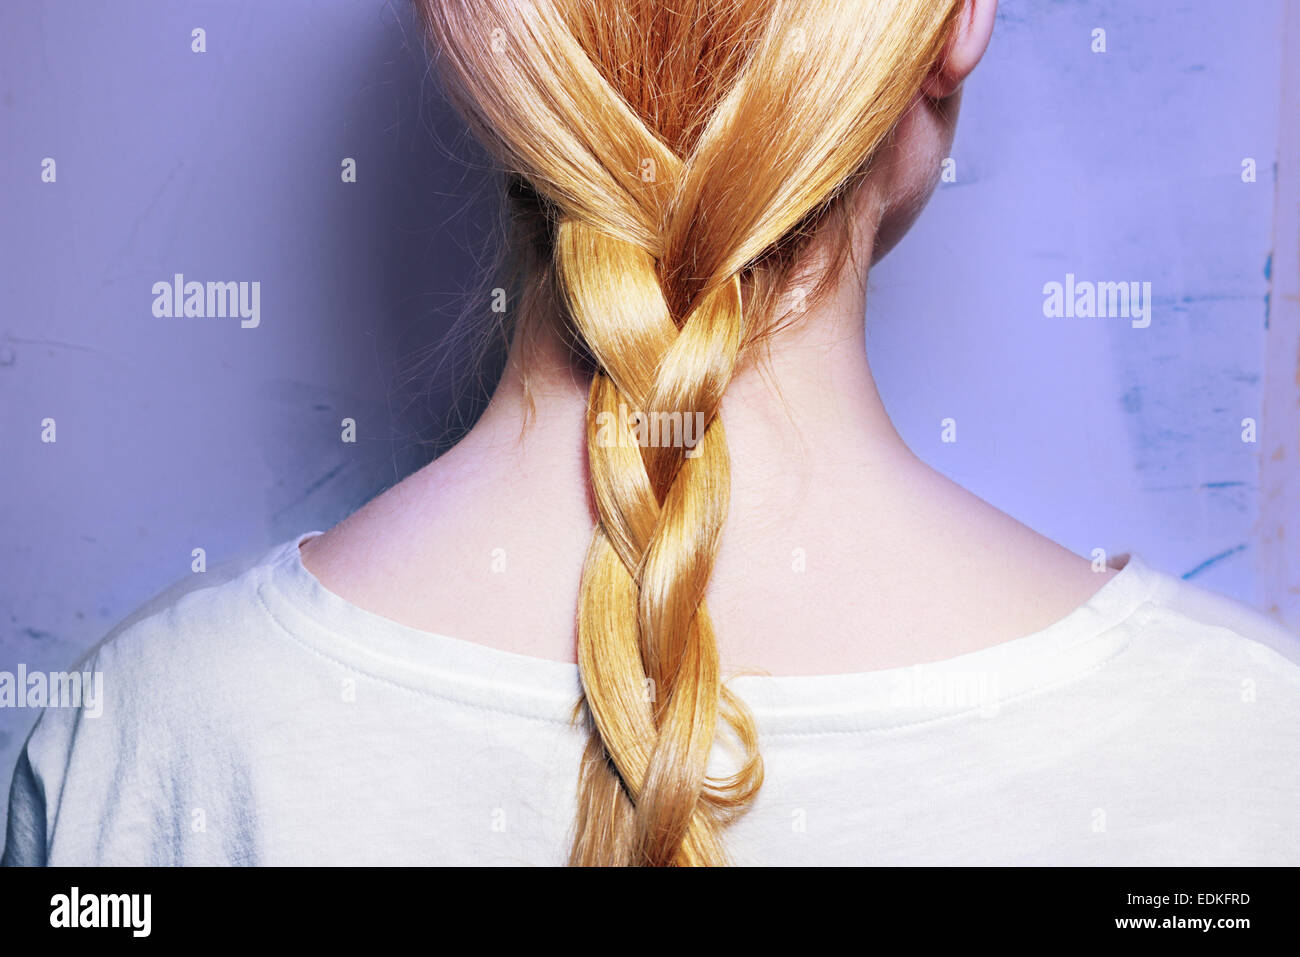 Girl with blond hair, braided into a braid on a purple background - Stock Image